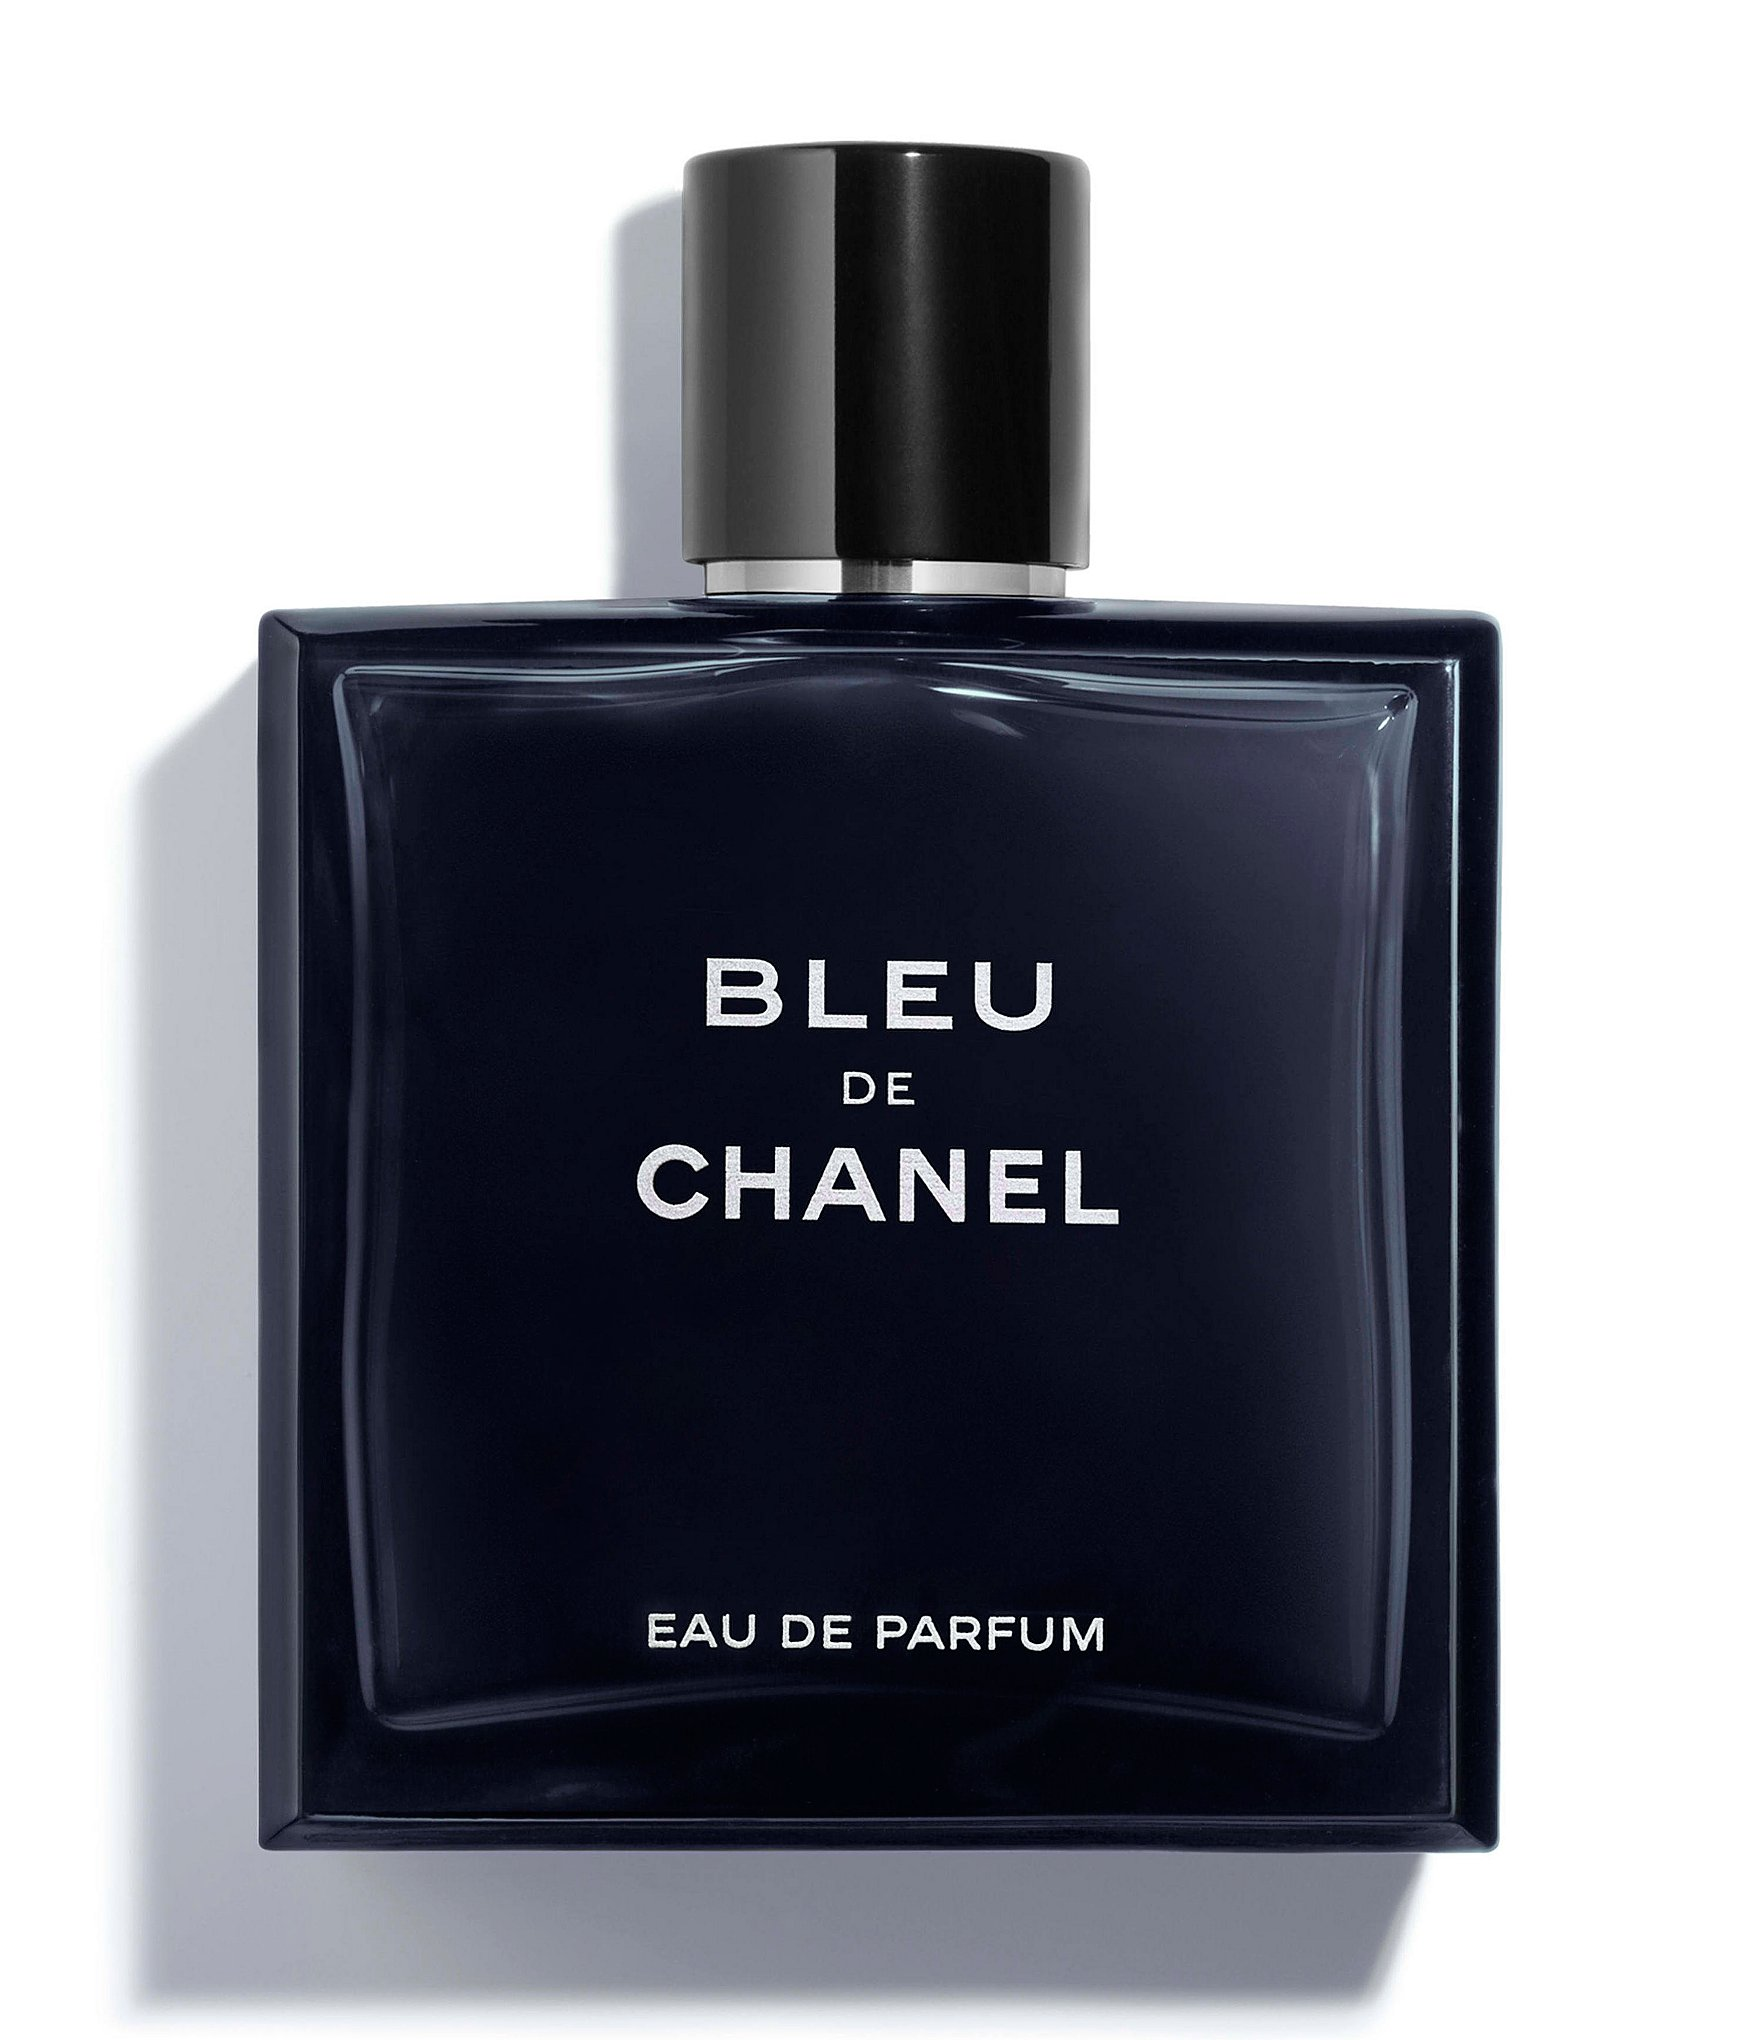 chanel chanel bleu de chanel eau de parfum pour homme spray dillard 39 s. Black Bedroom Furniture Sets. Home Design Ideas